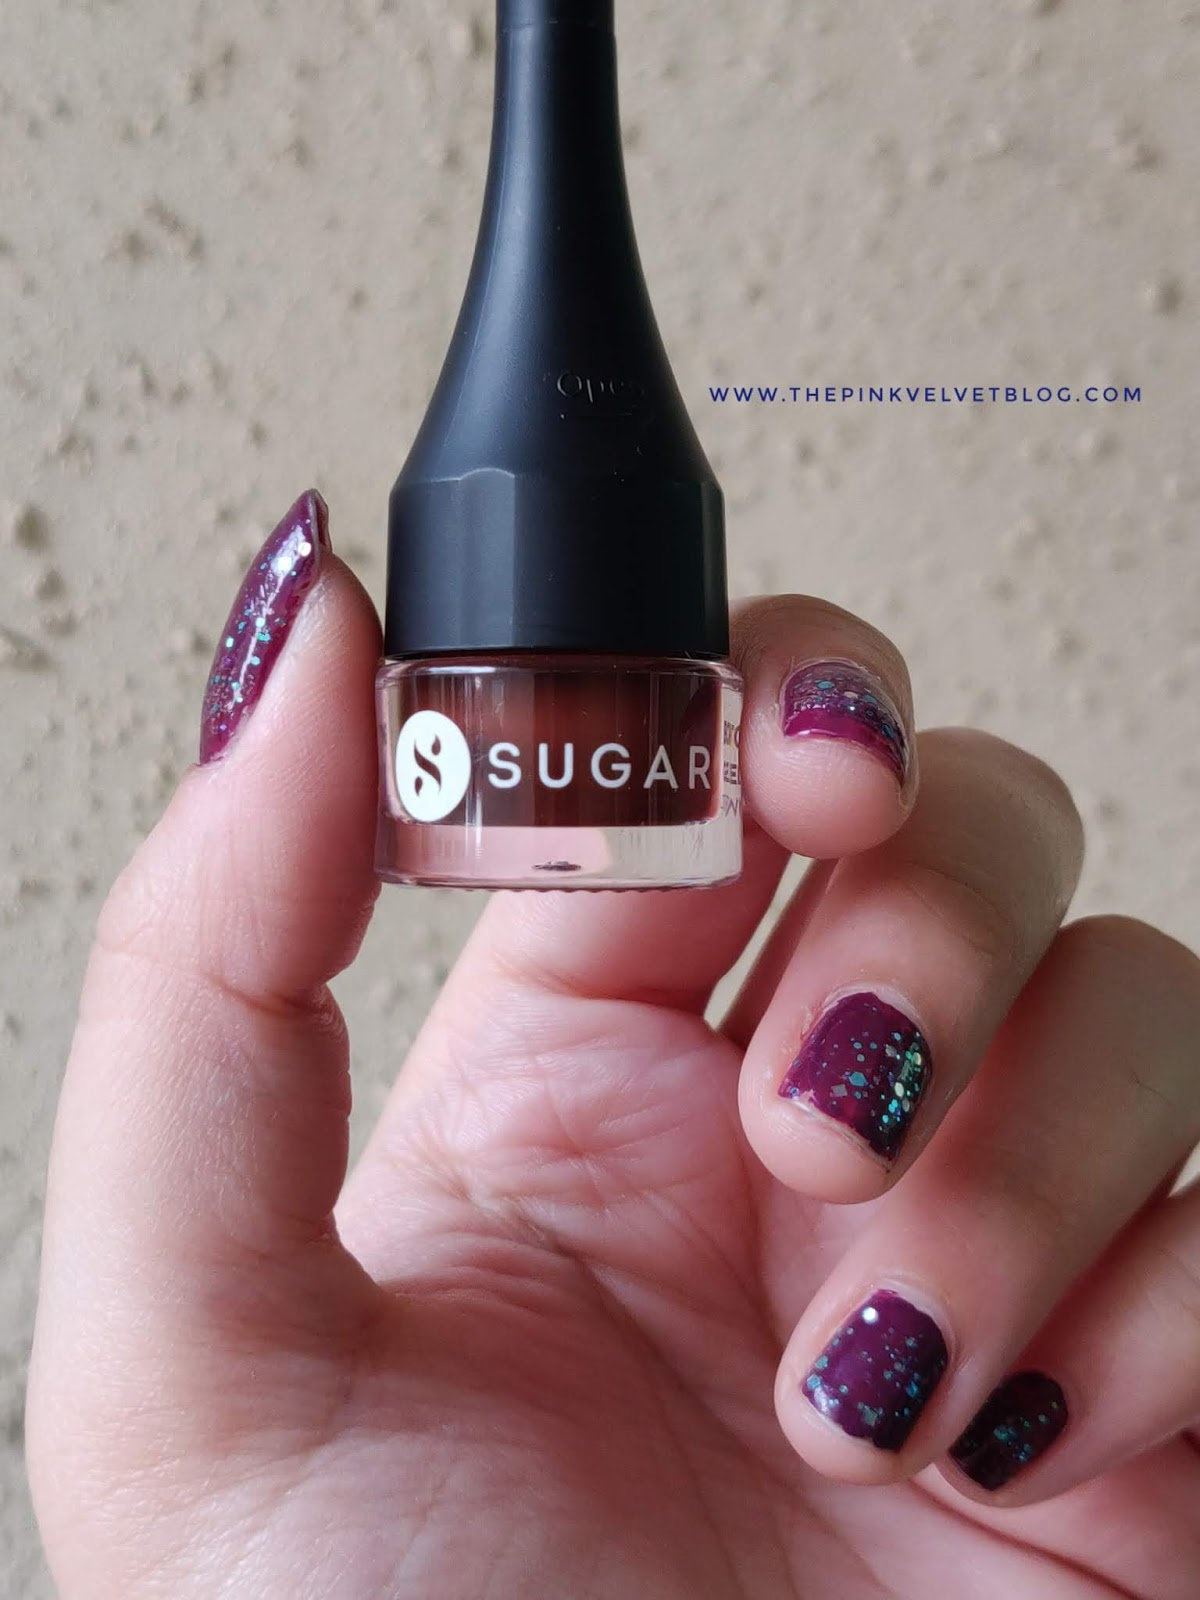 SUGAR Born to Wing Gel Eyeliner - Review and Swatches (All 5 Shades) - Brown Sugar